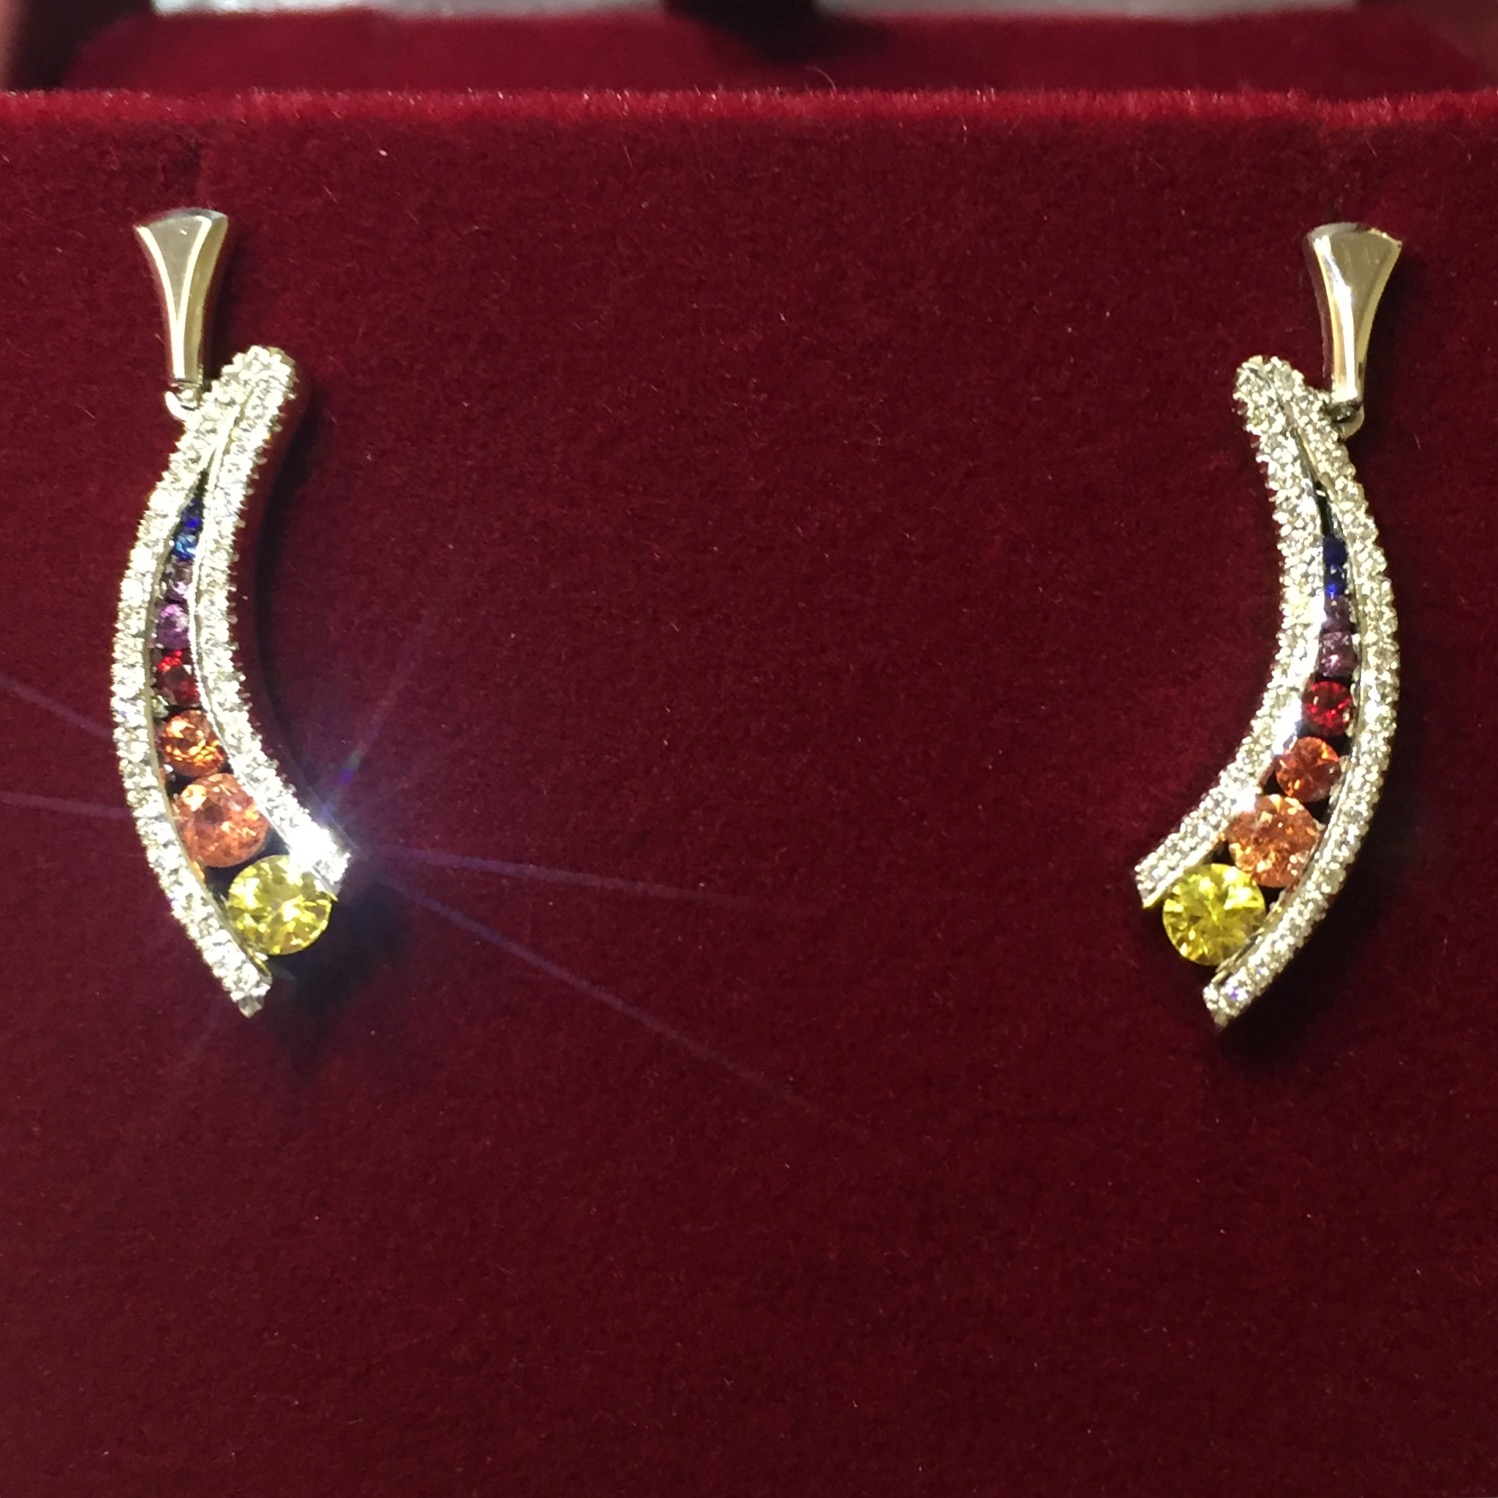 Earrings - Design them yourself with my guidance.